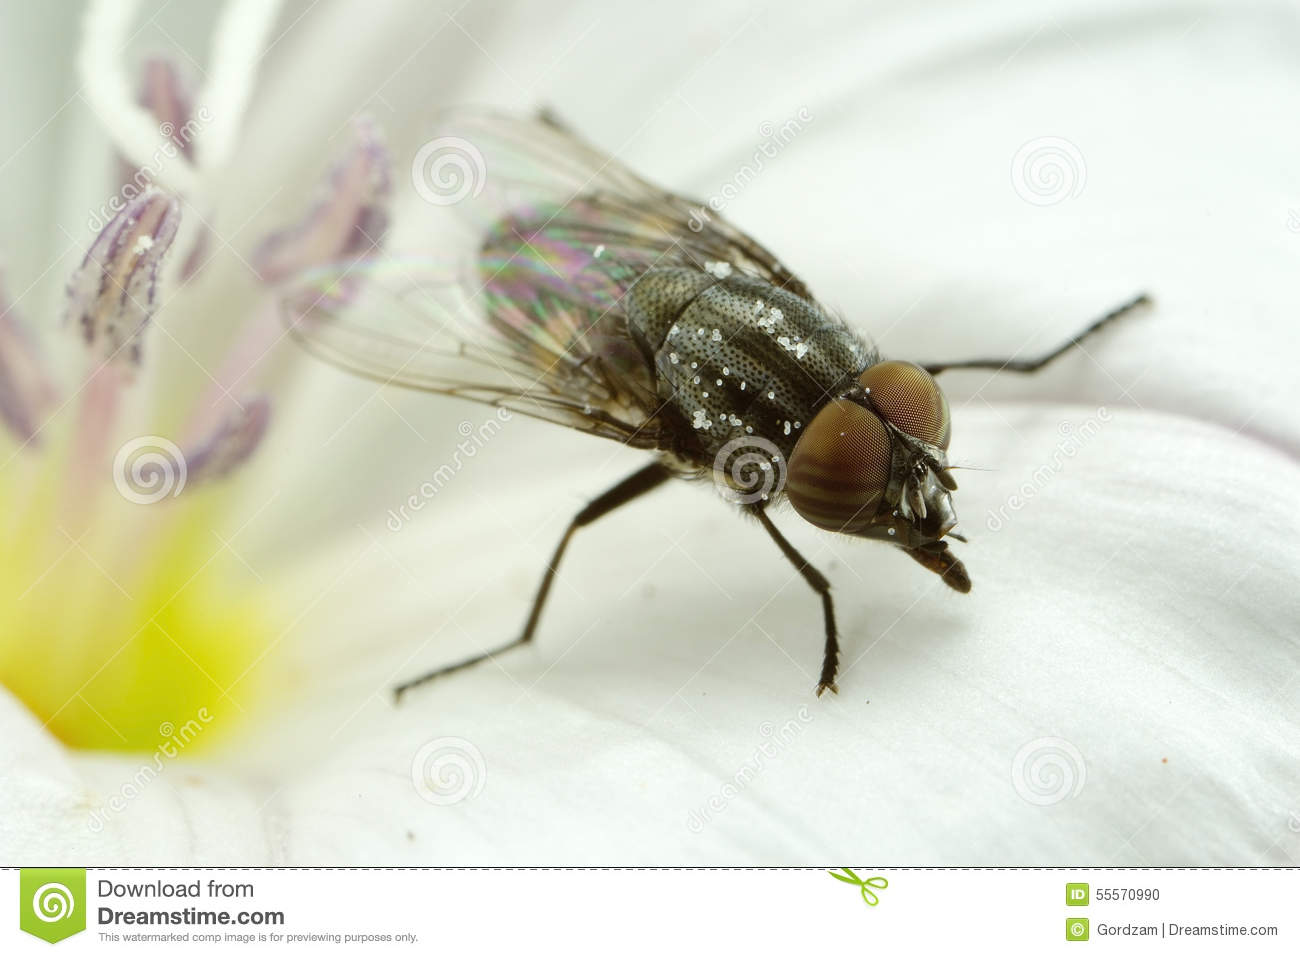 Some type of fly with striped eyes on a flower this fly is only found among the vegetation unlike the more common housefly which is usually found near all